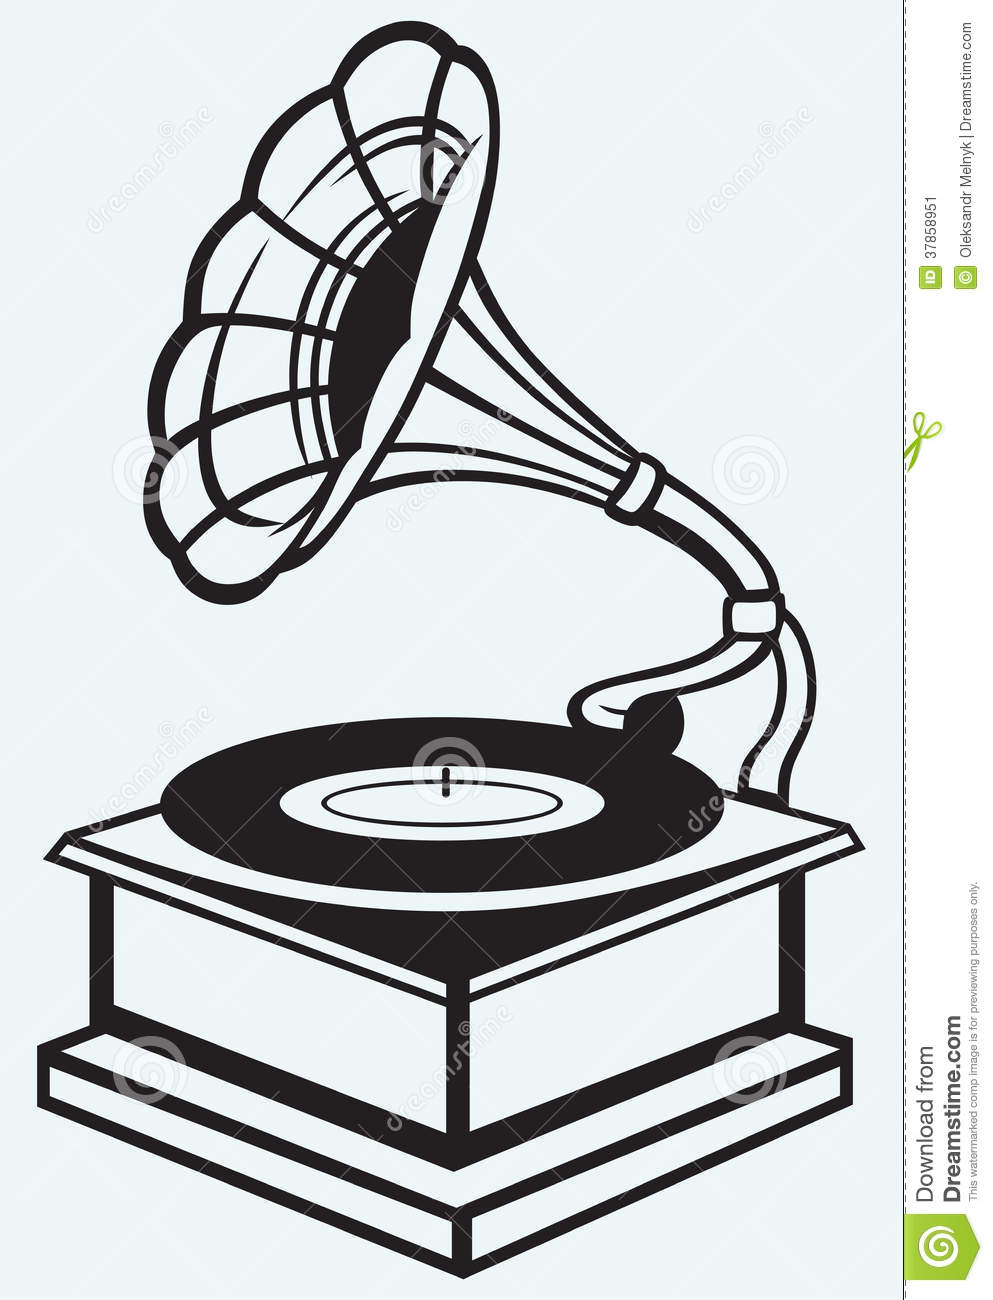 Old Record Player Stock Image - Image: 37858951